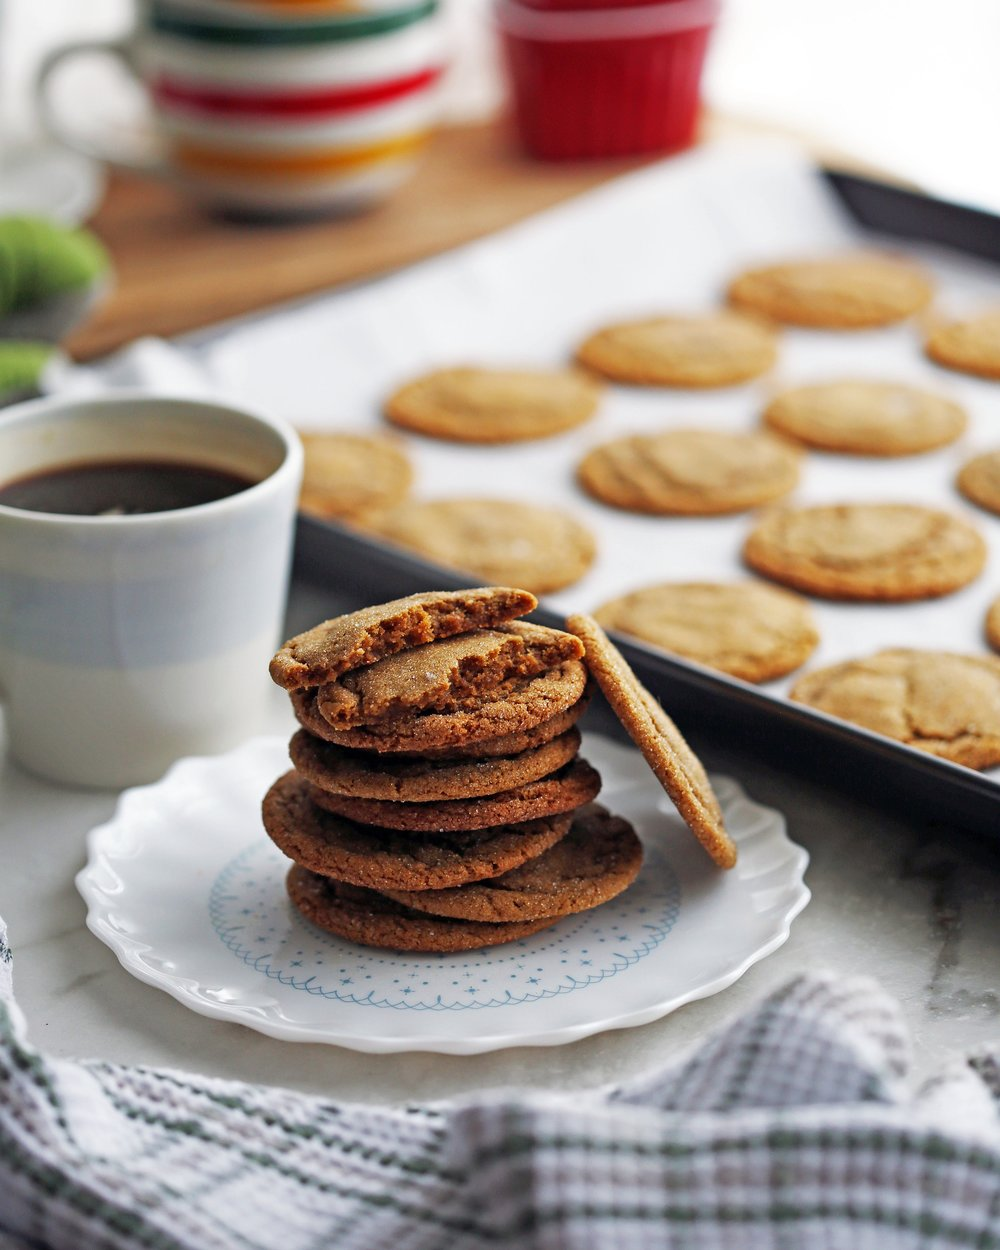 Stacked classic chewy gingersnap cookies on a plate with more cookies on a baking sheet in the background.